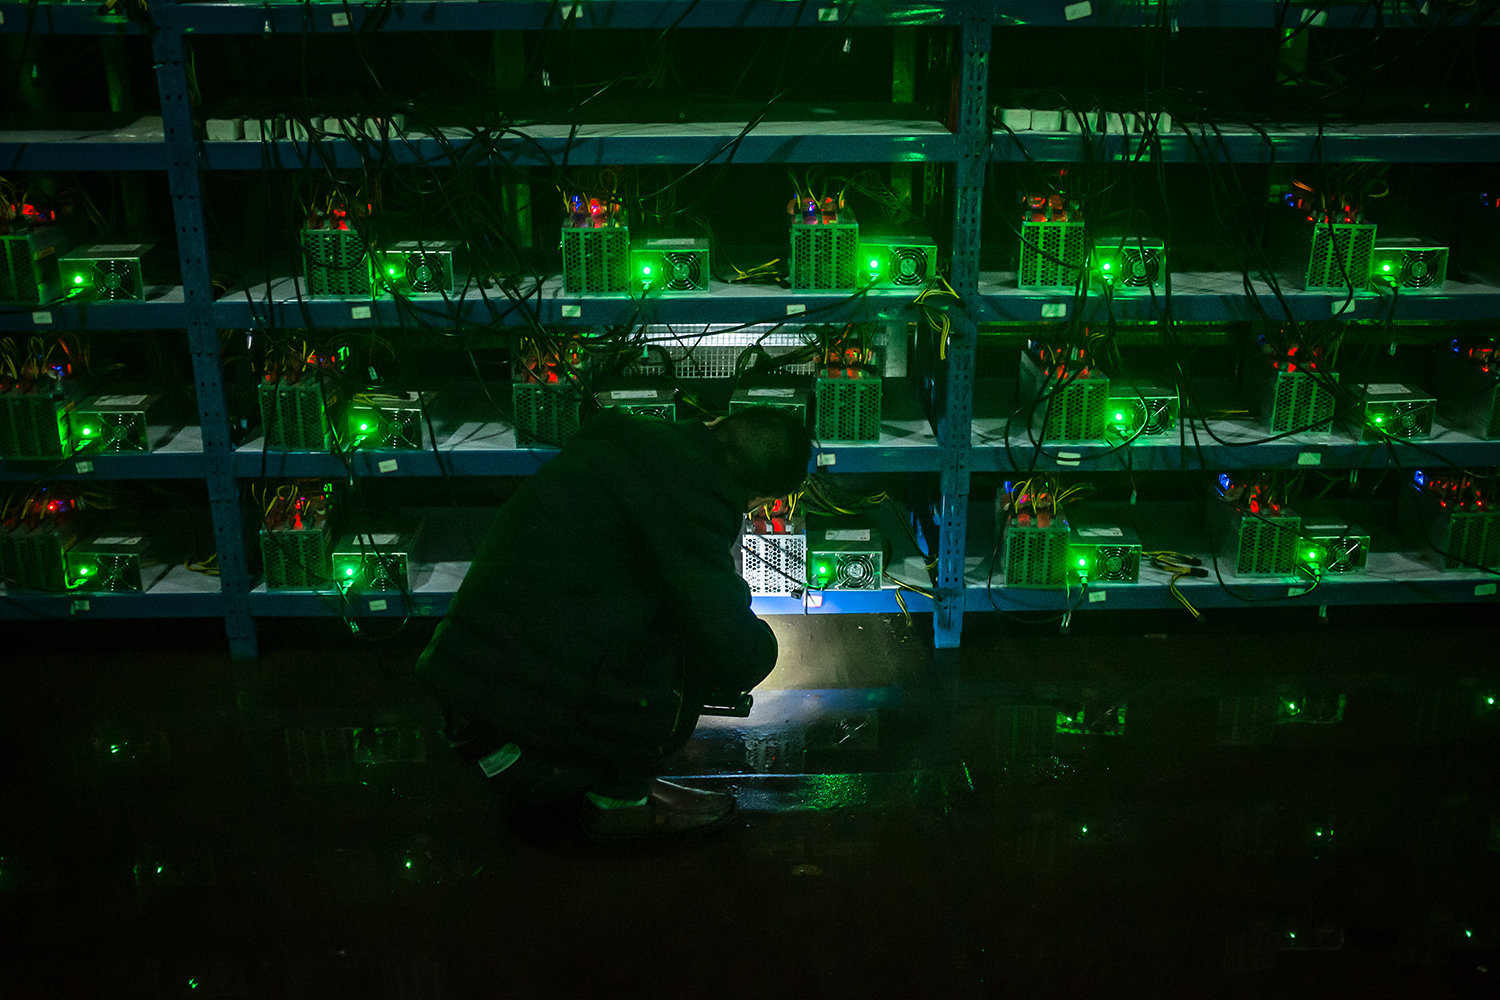 "Huang, 25, Kun's brother, inspects a malfunctioning mining machine during his night shift, September 26, 2016. Miners can check a machine's condition and operations using phones and personal computers. For most issues, they can simply restart a machine. ""If it's a complicated problem, we just ship it to the factory and let them fix it,"" Huang said."